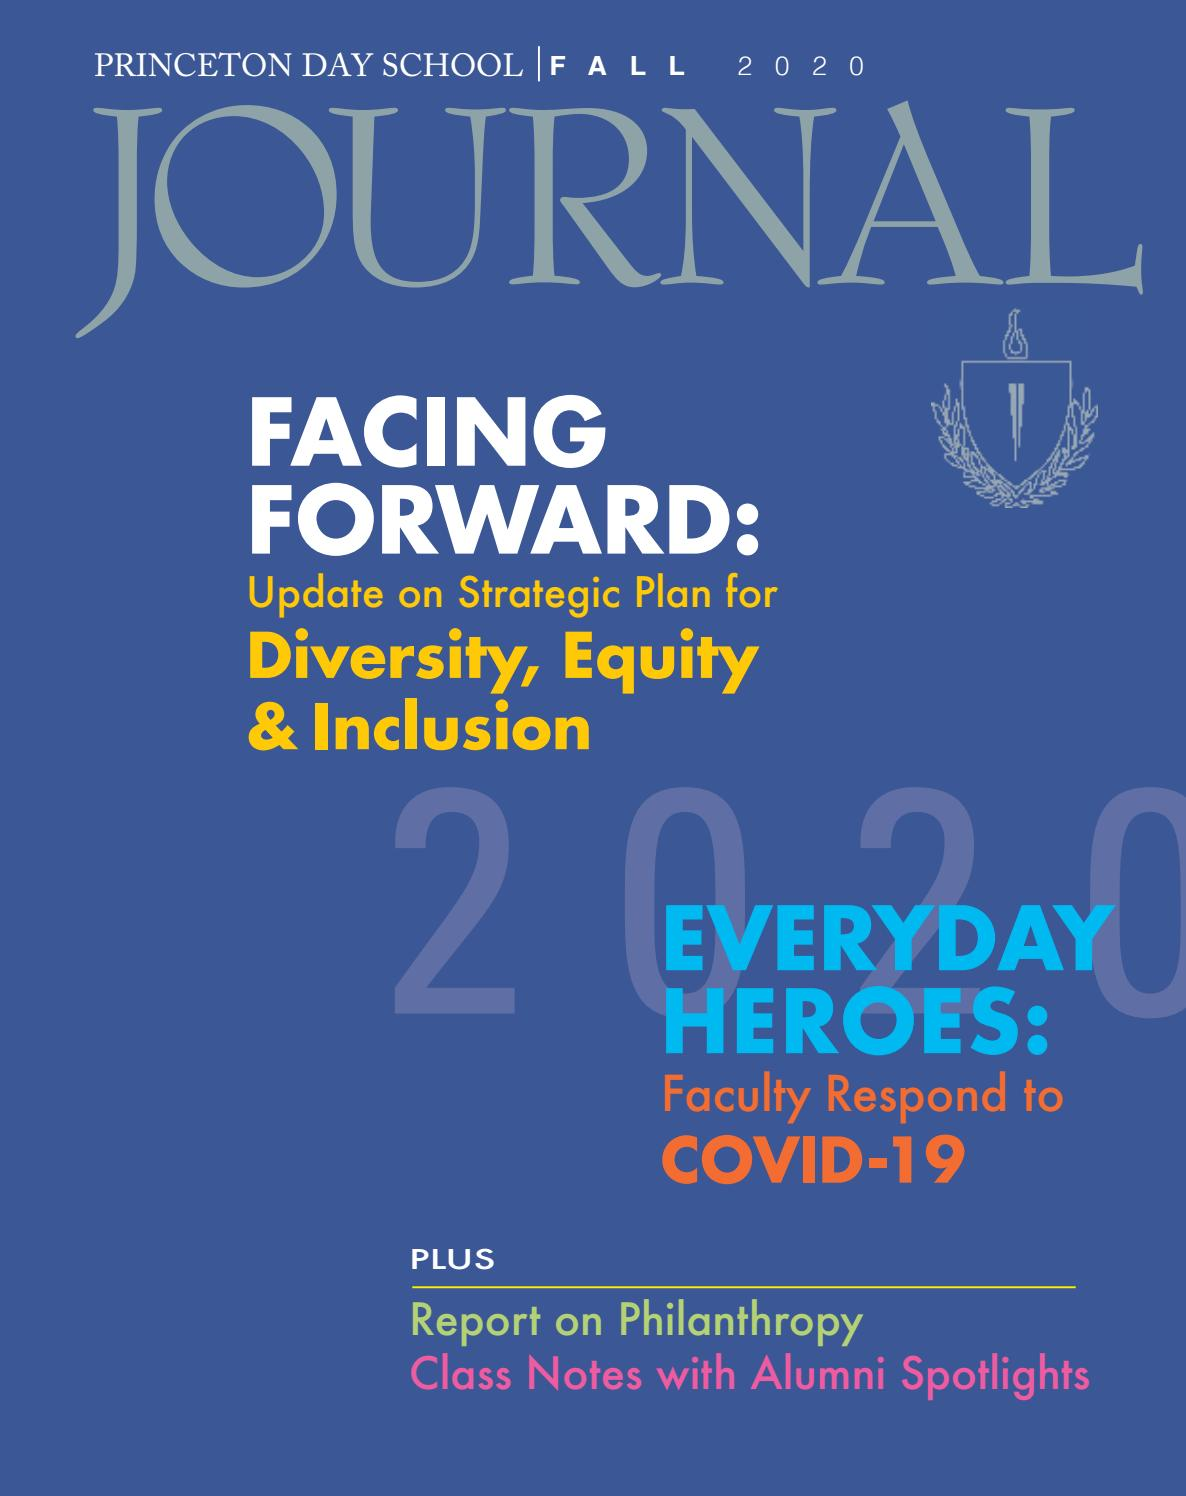 Pds Fall Journal 2020 By Princeton Day School Issuu